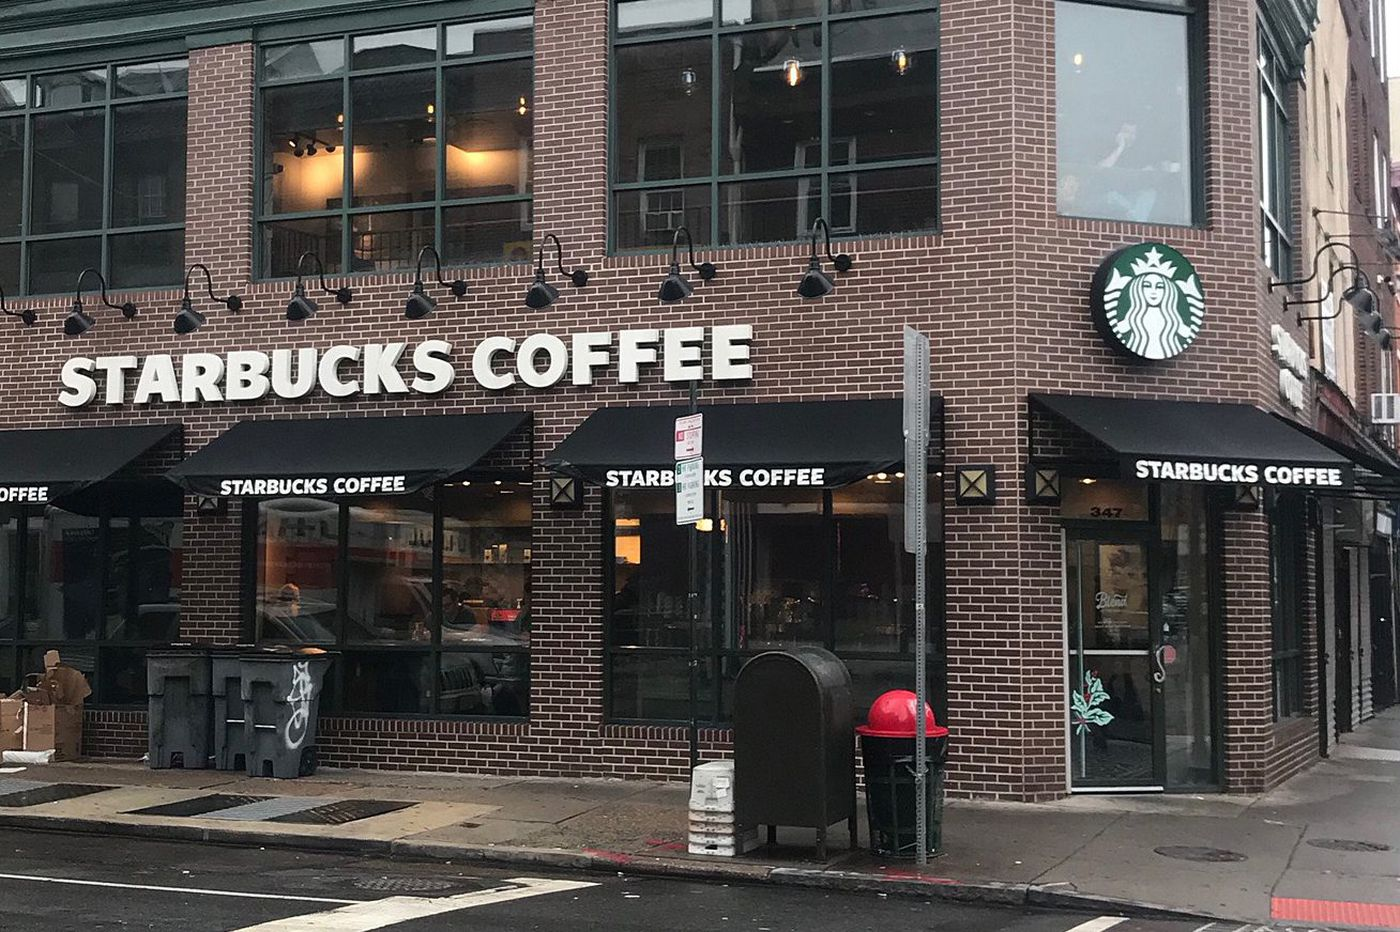 Starbucks on South Street, one of the first in the region, to close